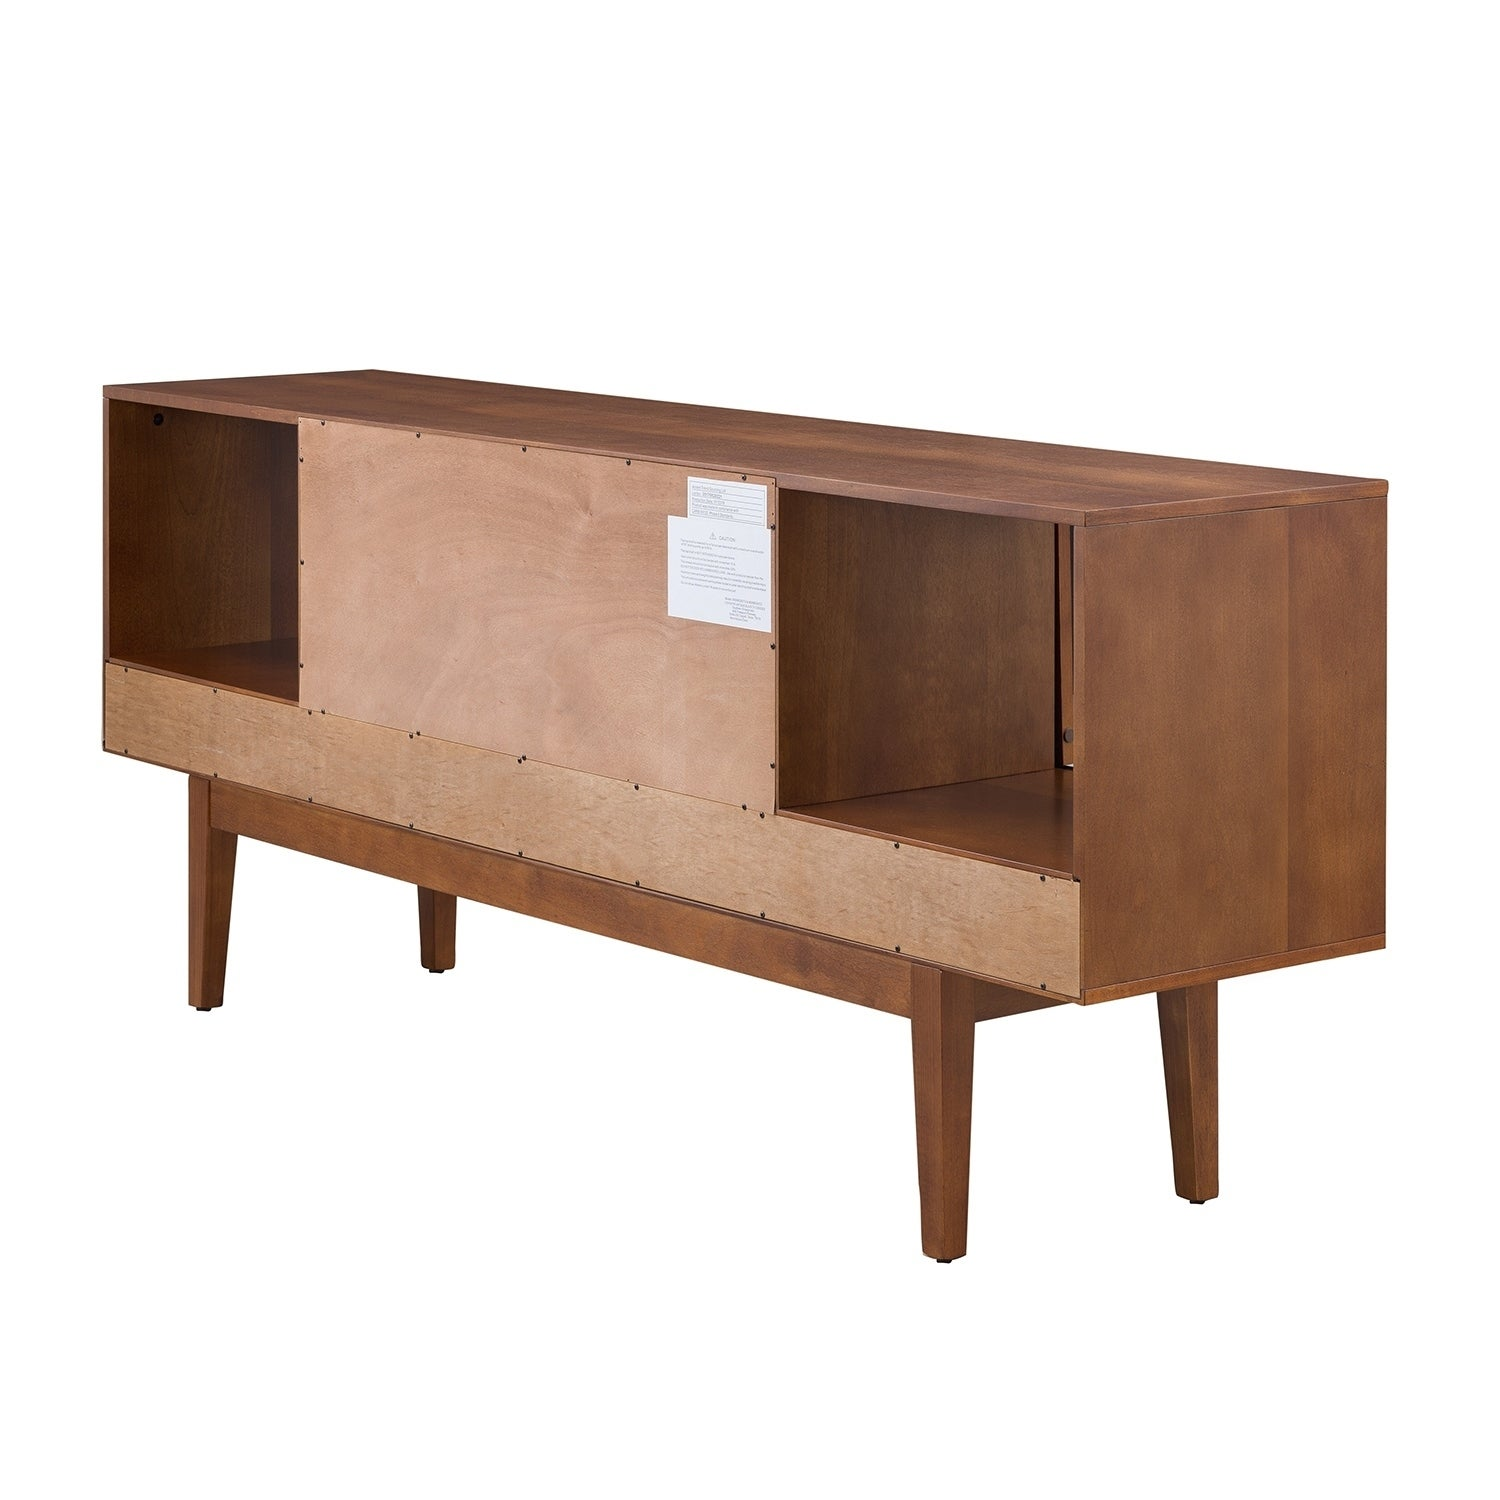 Shop holly martin simms midcentury modern media console on sale free shipping today overstock com 22676681